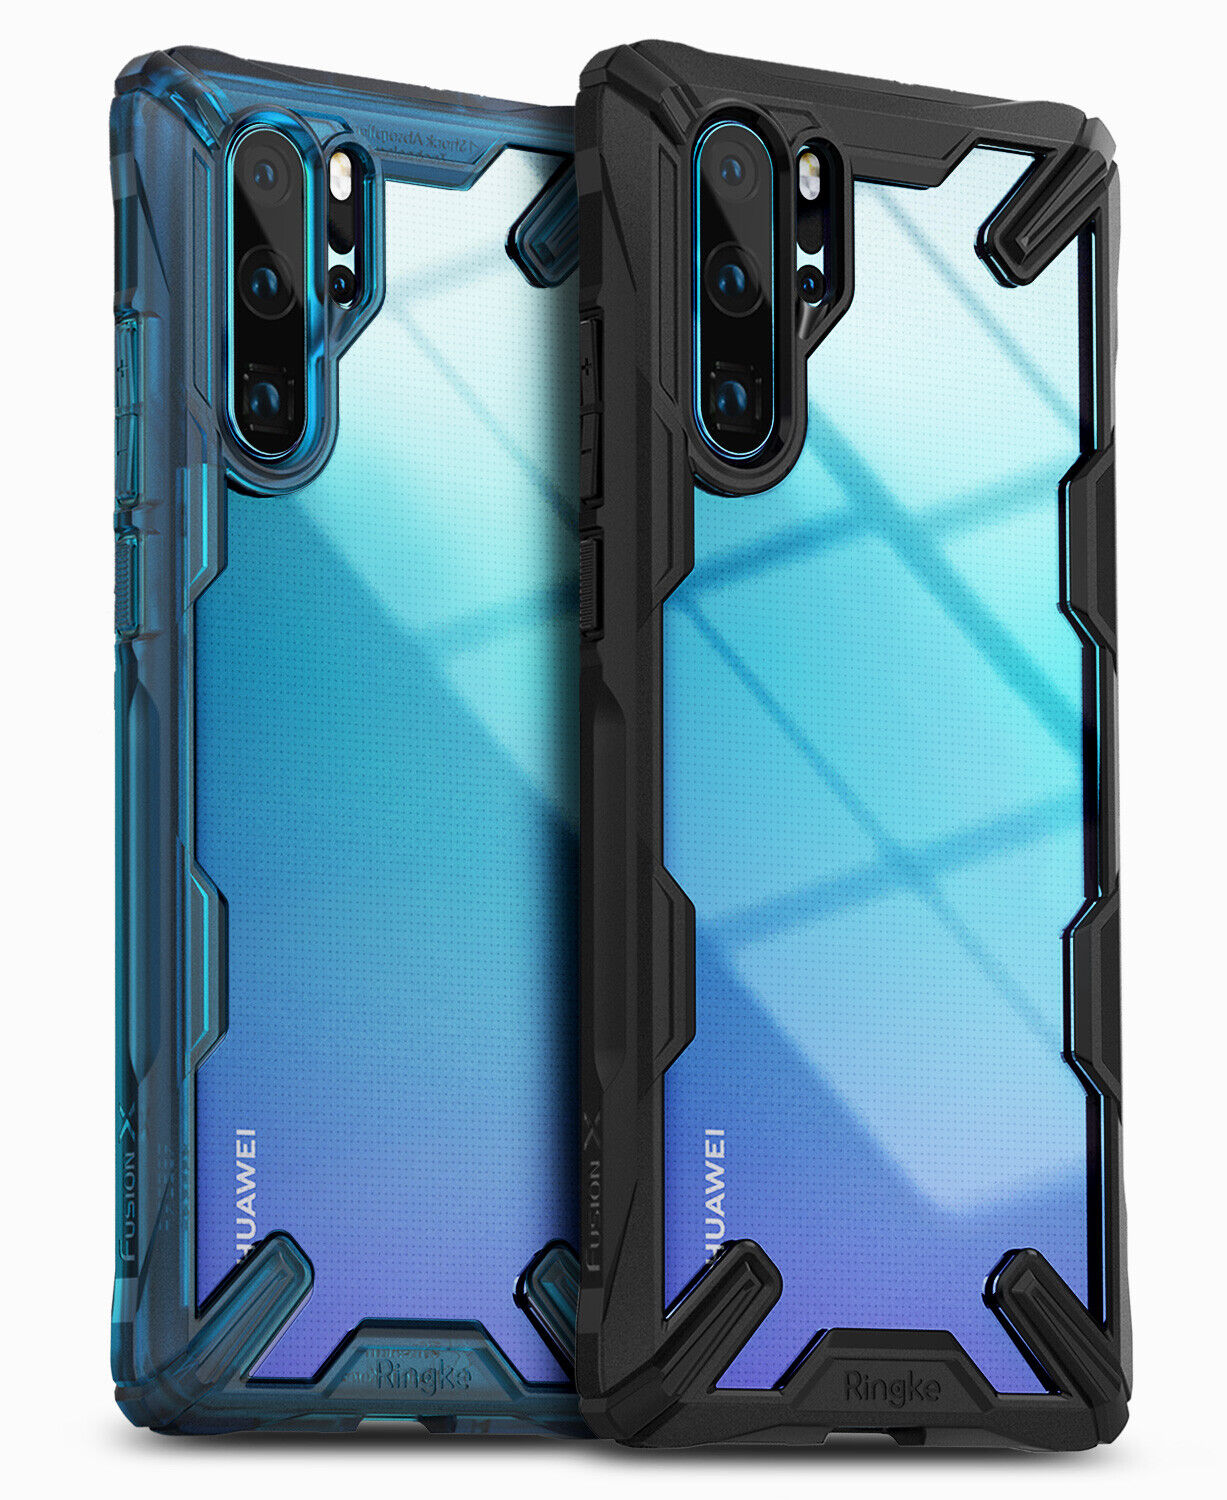 for-huawei-p30-pro-case-ringke-fusion-x-shockproof-protective-pc-back-cover